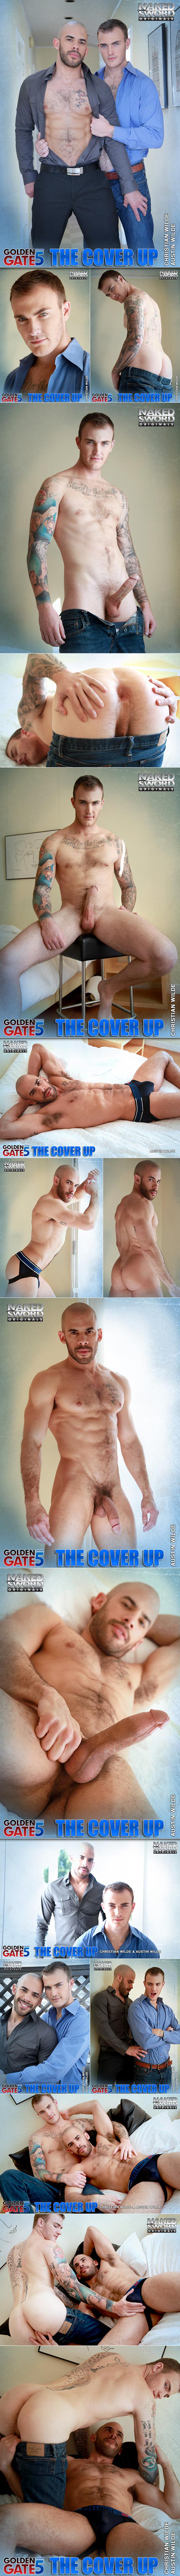 "NakedSword Originals: Chrstian Wilde bottoms for the first time in ""Golden Gate Season 5 - The Cover Up"" (Episode 4)"